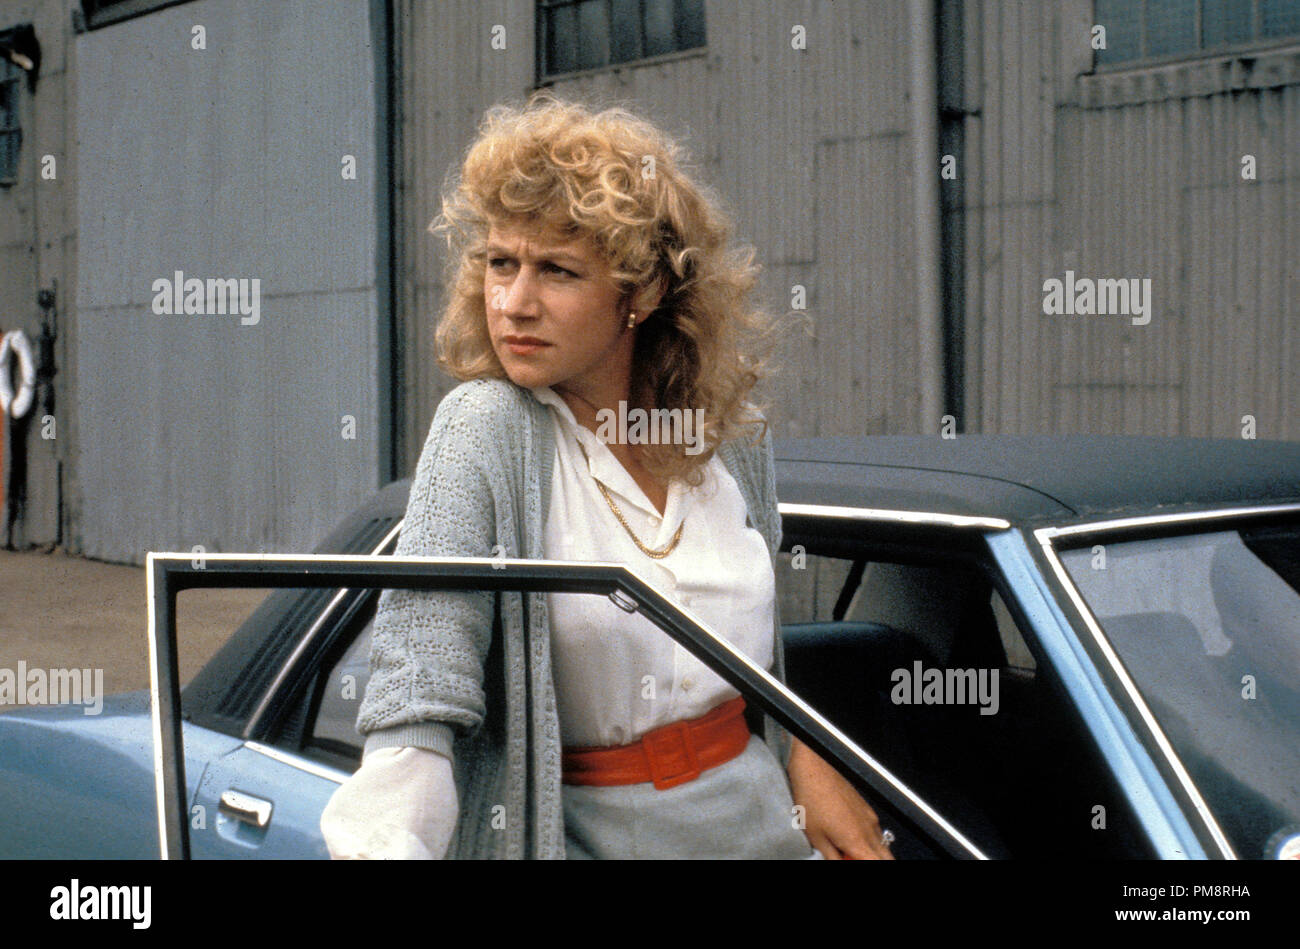 Studio Publicity Still from 'The Long Good Friday' Helen Mirren © 1980 HandMade Films All Rights Reserved   File Reference # 31715029THA  For Editorial Use Only - Stock Image